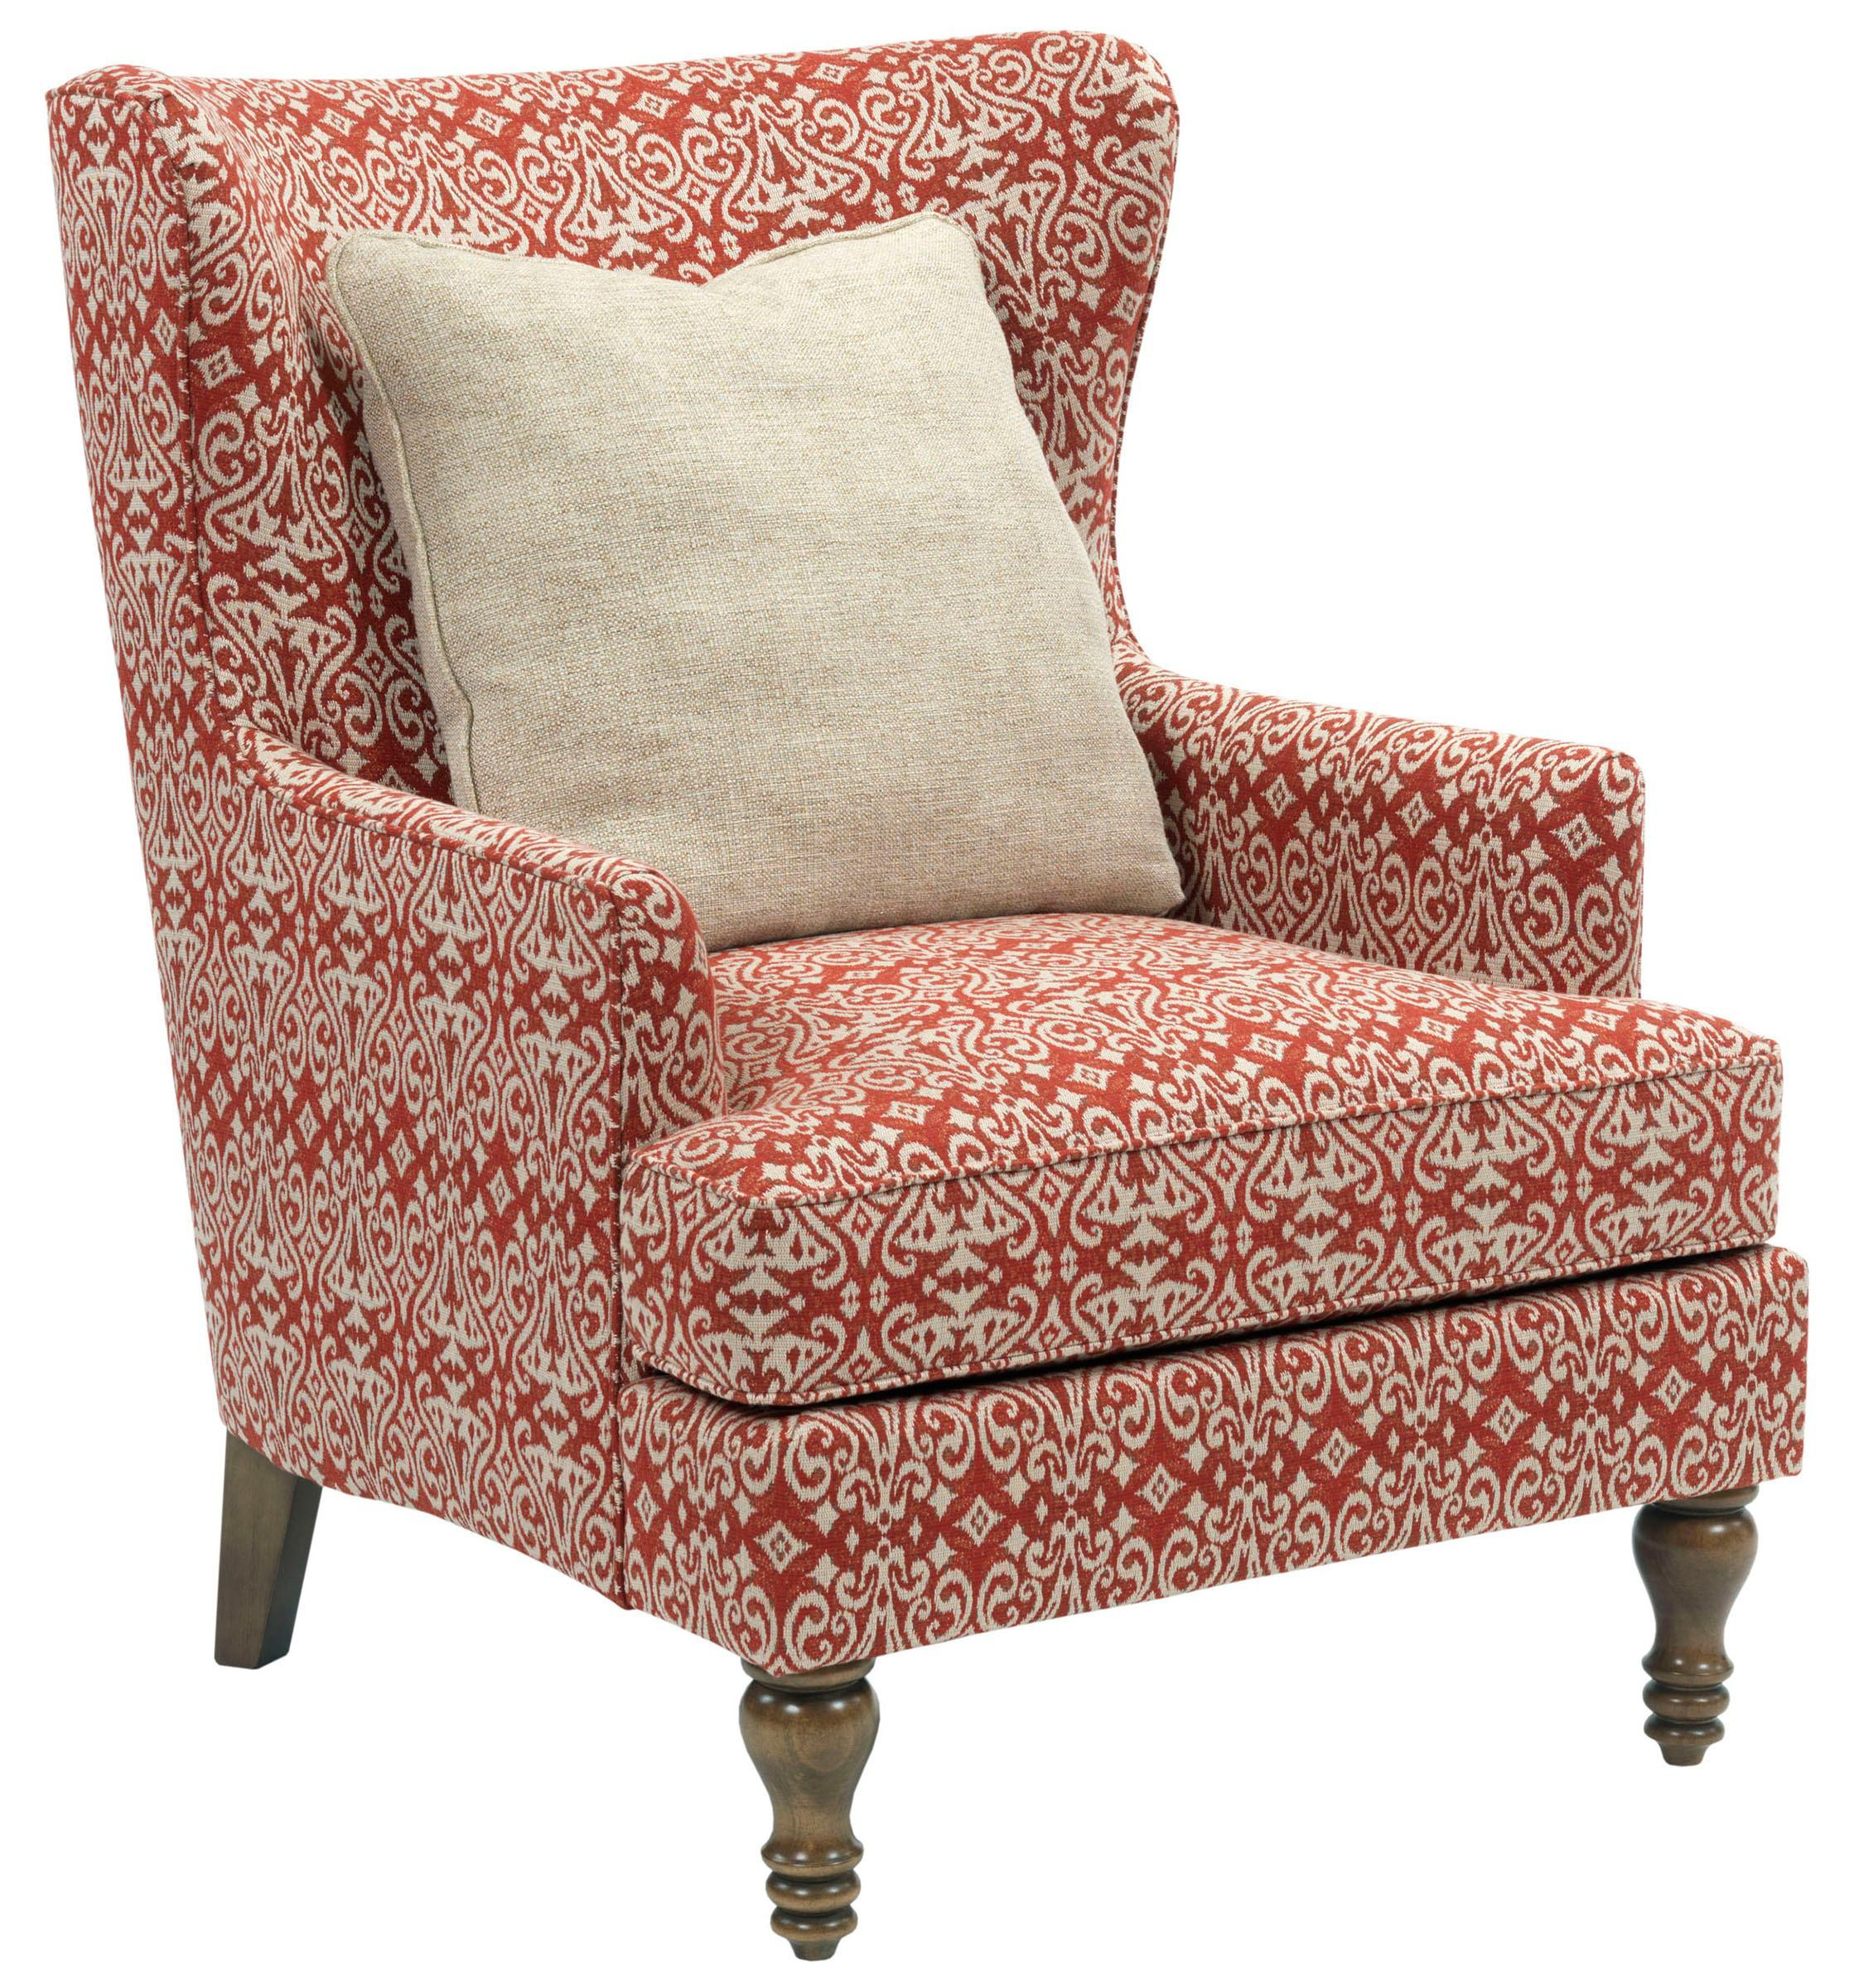 Fiona Transitional Upholstered Wing Back Chair By Broyhill Furniture